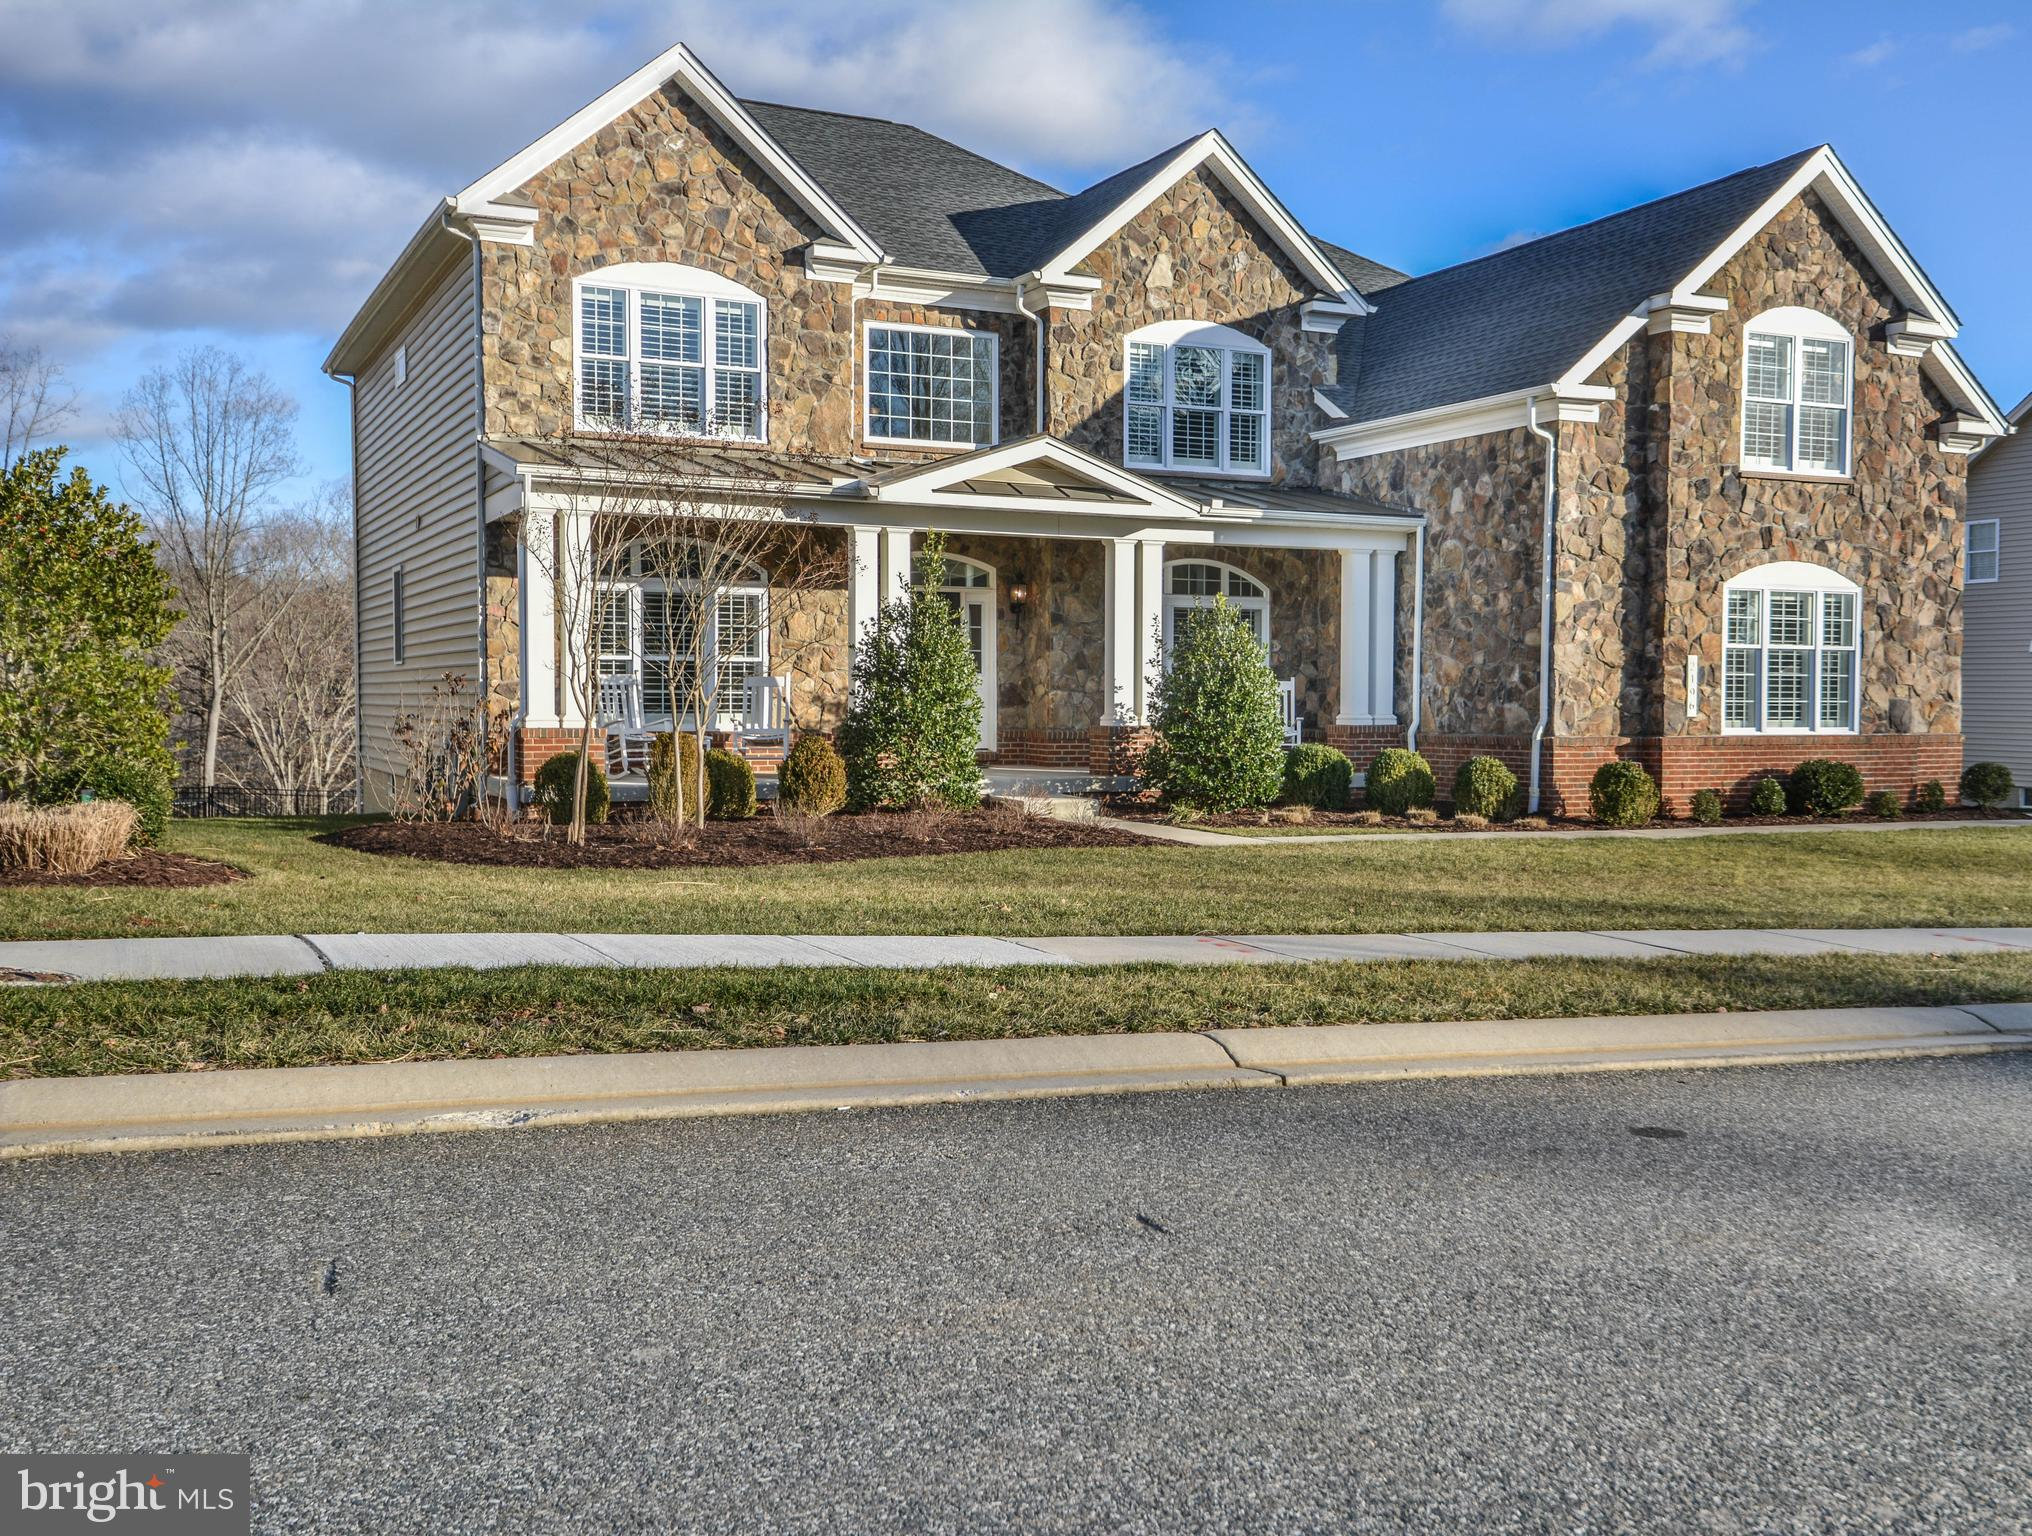 2196 CEDARKNOLL COURT, BEL AIR, MD 21015